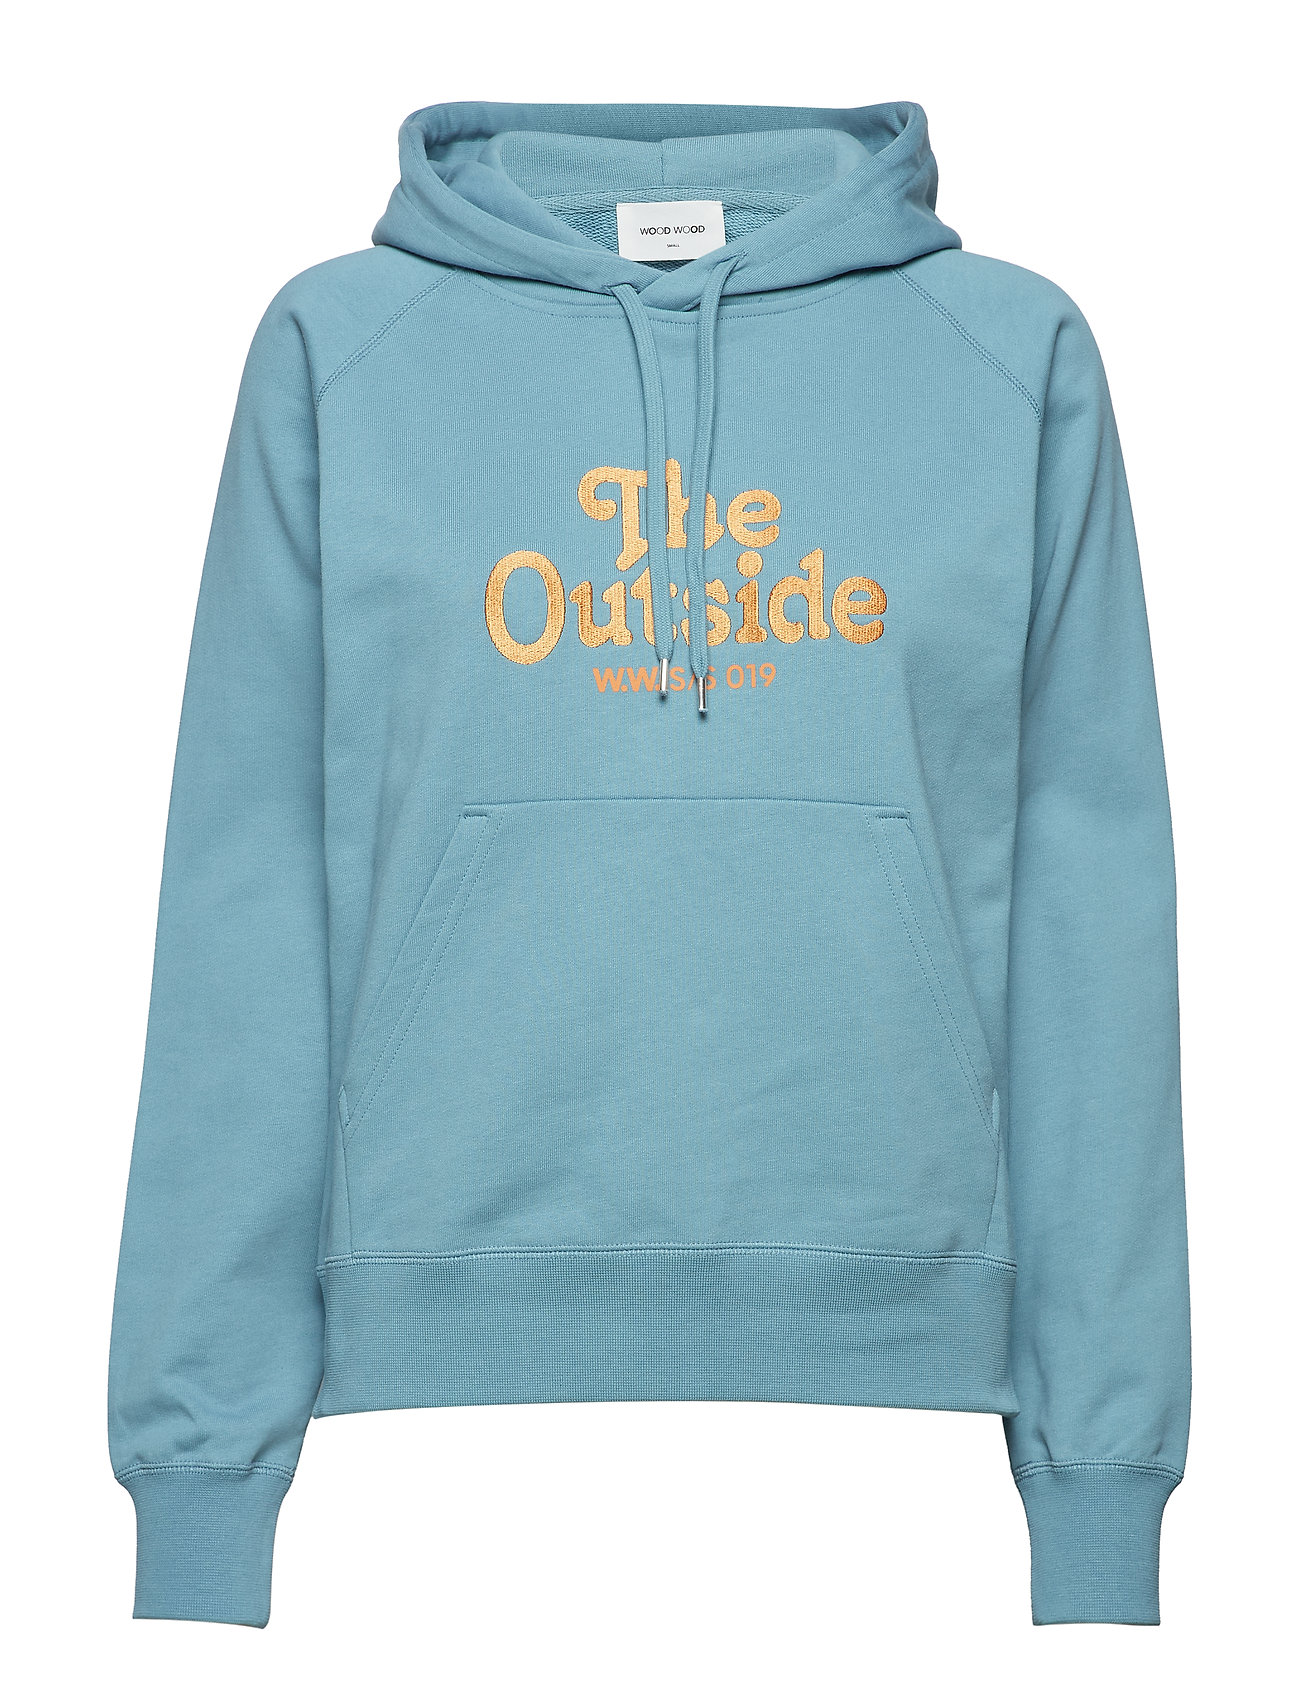 cf5d26b8815 Penelope Hoodie hoodies fra Wood Wood til dame i DUSTY BLUE - Pashion.dk